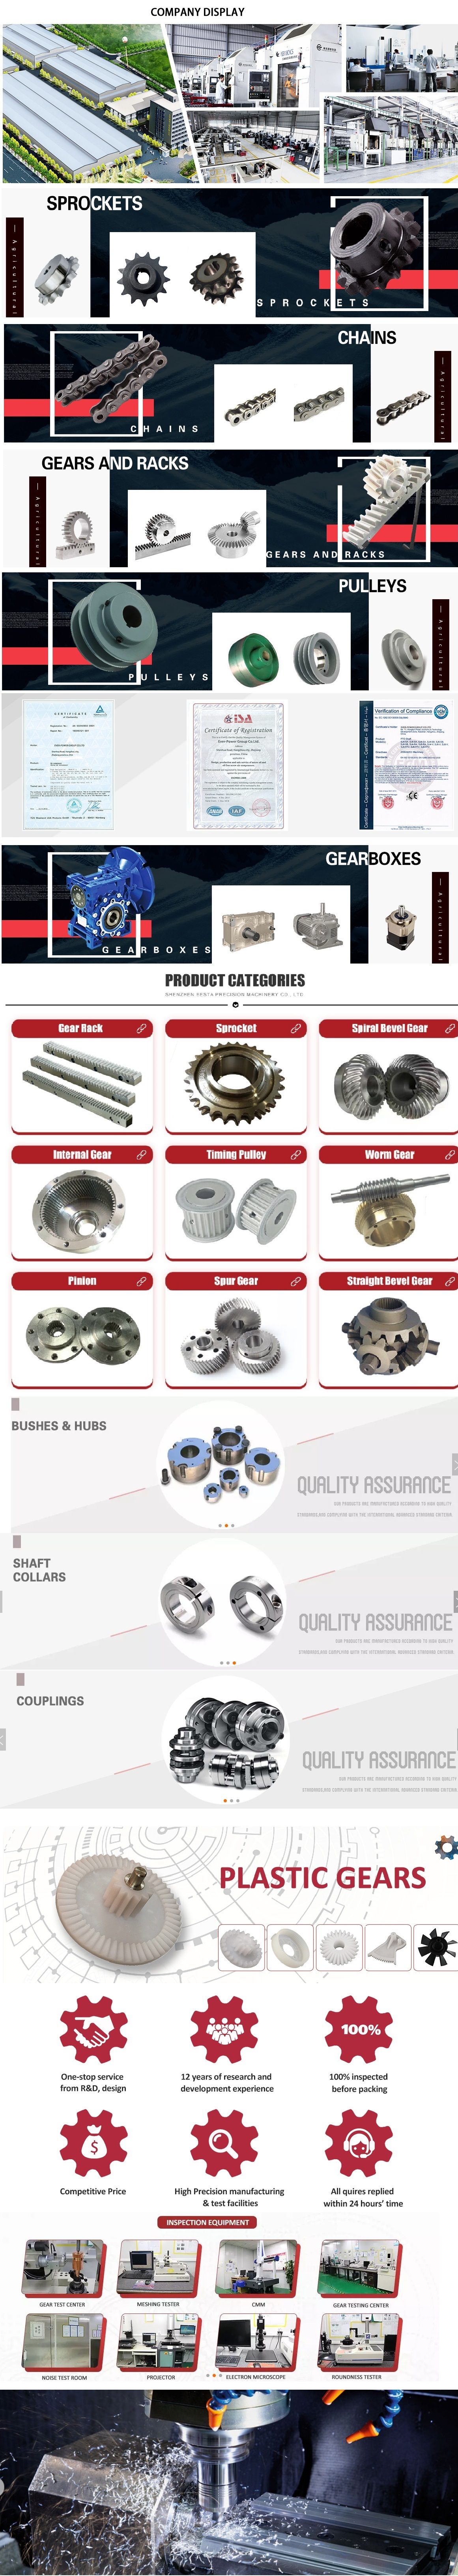 in Edinburgh United Kingdom  sales   price   shop   near me   near me shop   factory   supplier Precision Helical Gear for Tool Magazine manufacturer   best   Cost   Custom   Cheap   wholesaler